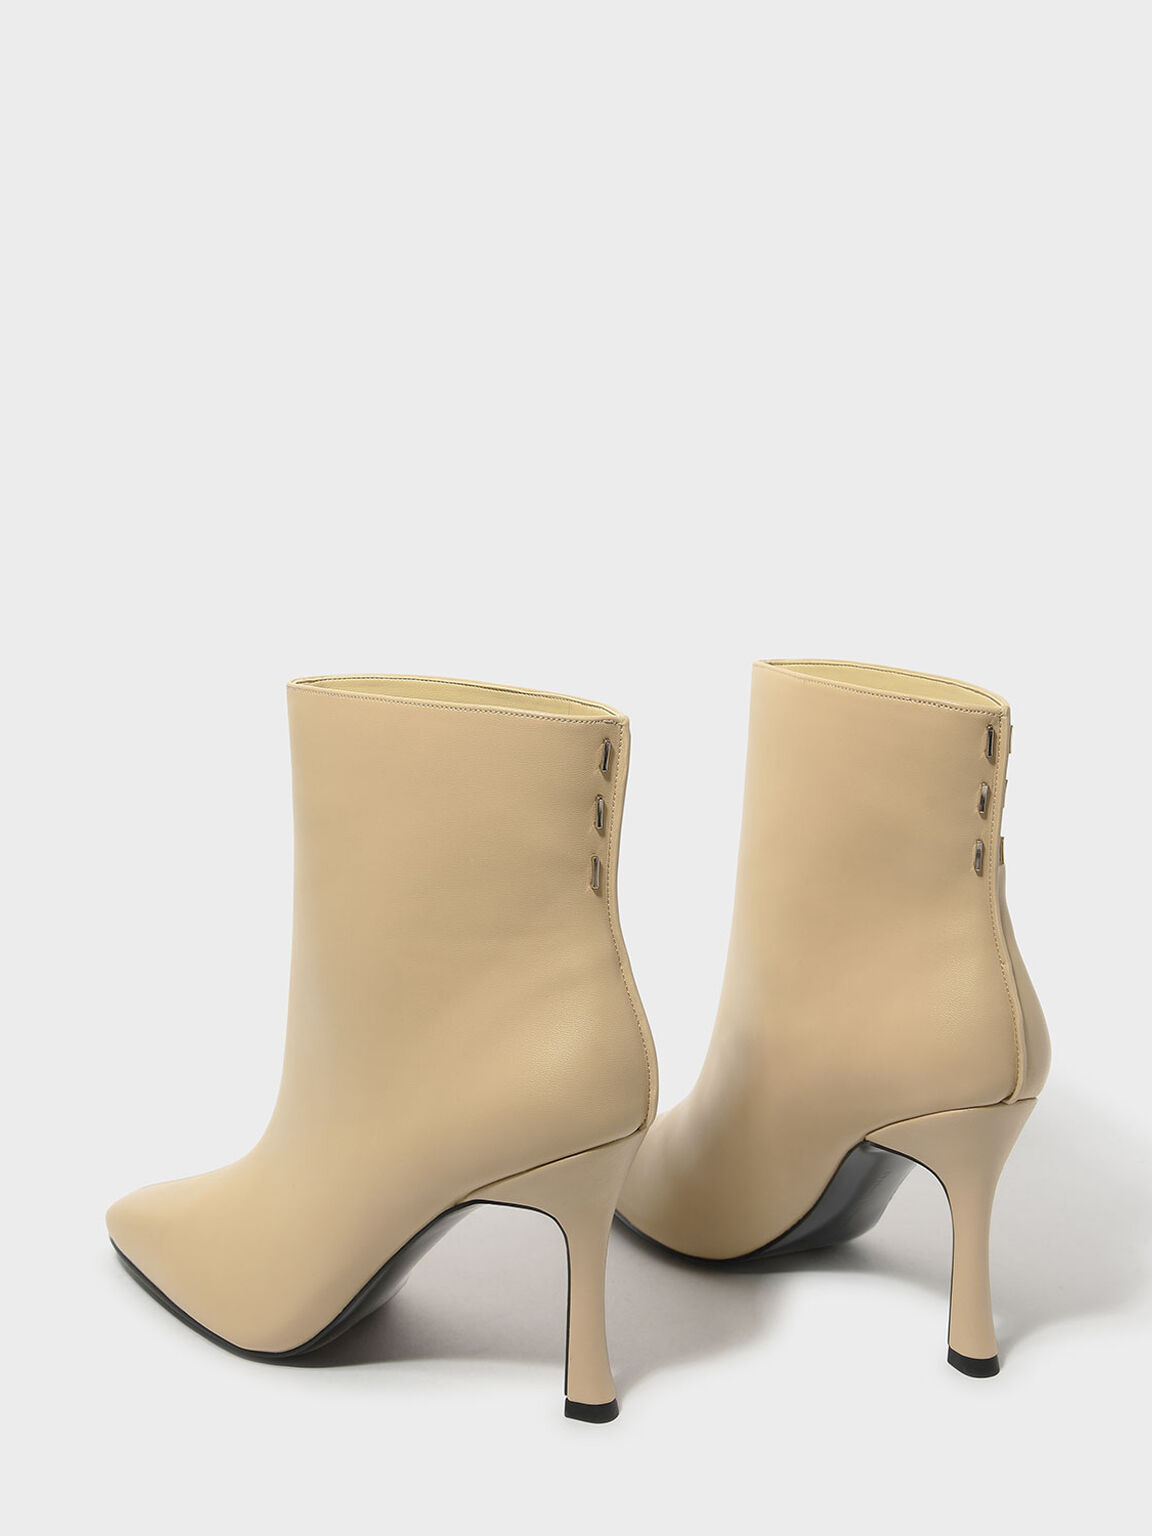 Mini Square Toe Boots, Nude, hi-res